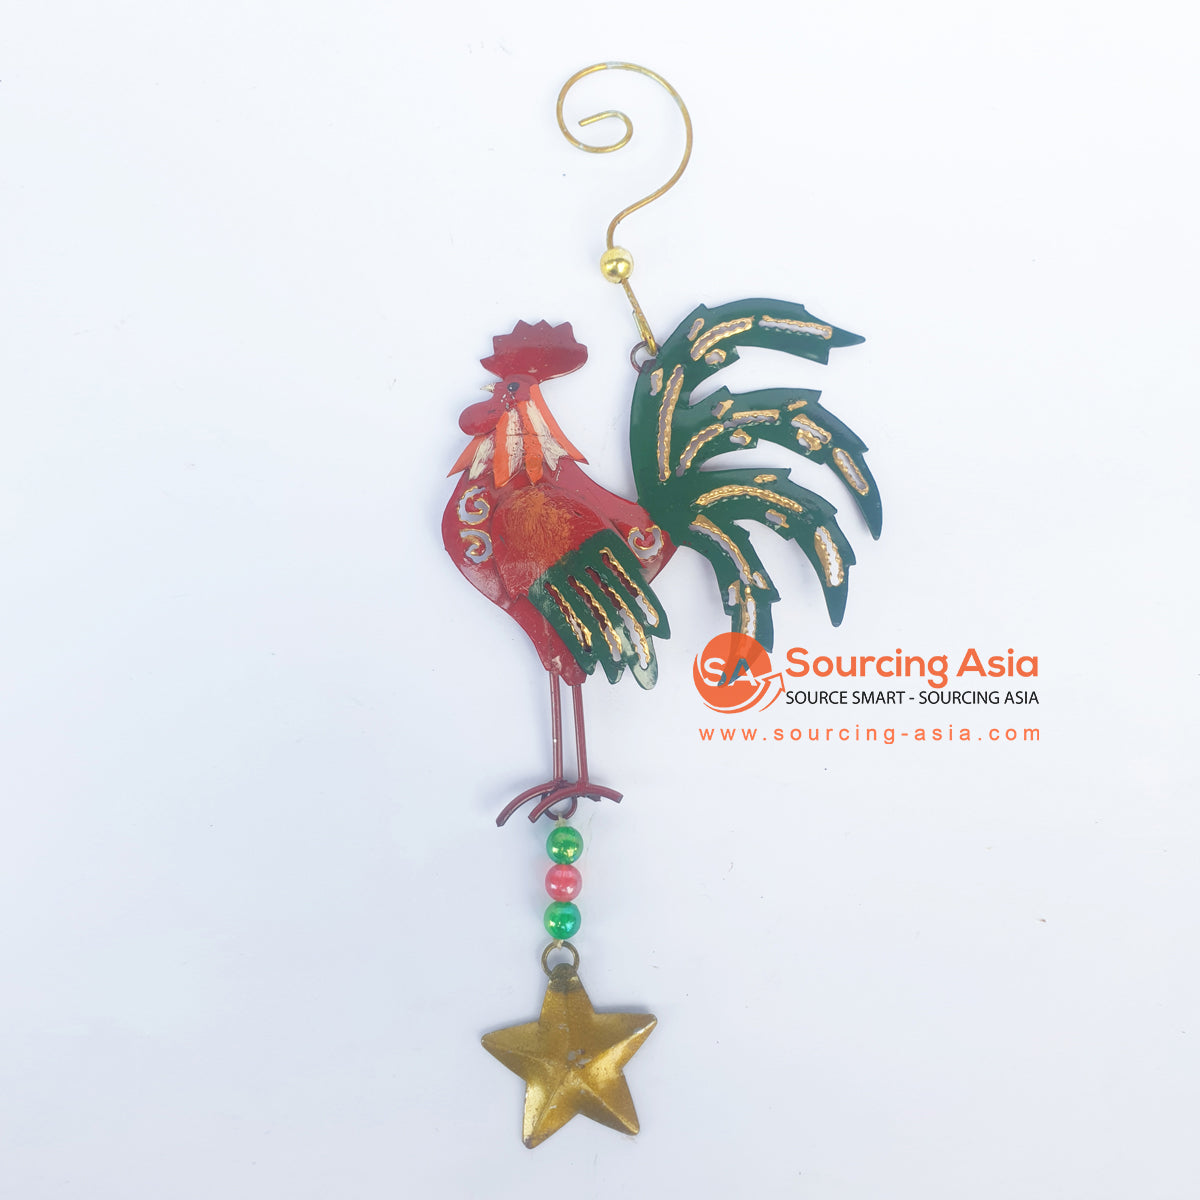 PEBC188 AIRBRUSHED PAINTED RED ROOSTER WITH GREEN WINGS AND TAIL WALL DECORATION WITH HANGING HOOK AND STAR ORNAMENT